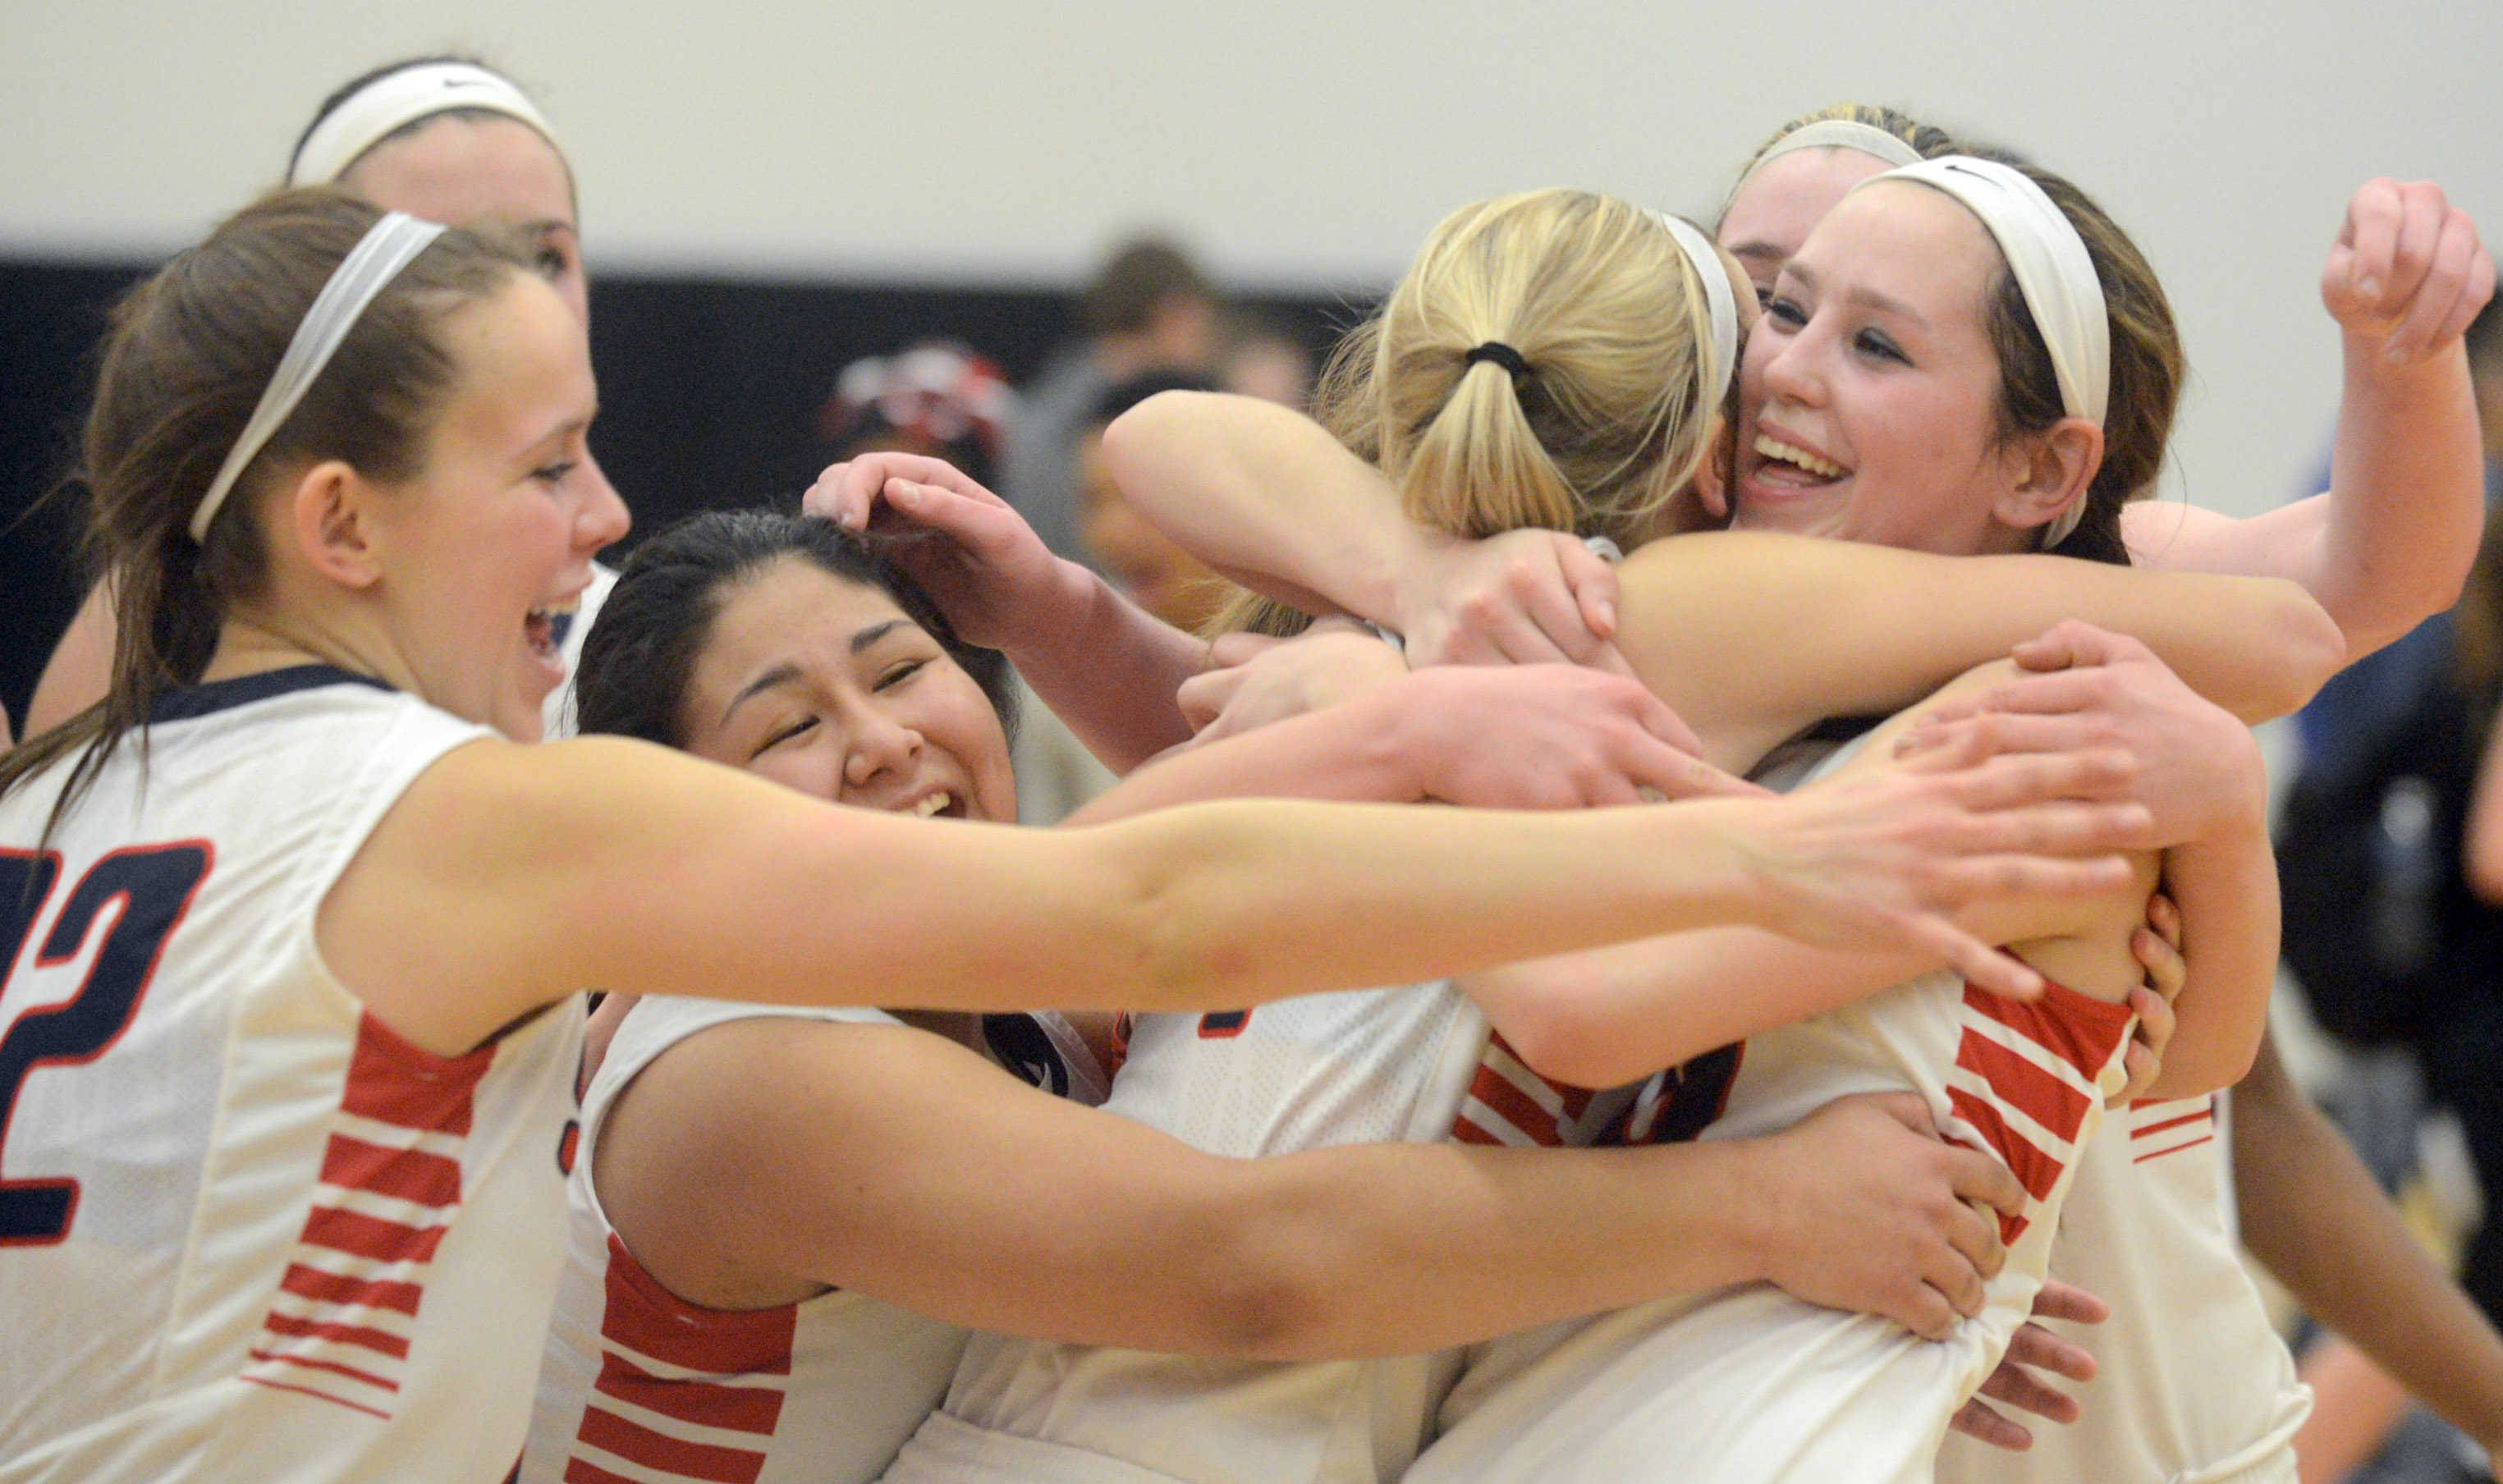 South Elgin's Laura McIntosh, left, Nadia Yang, center, and Kennede Miller share a group hug after Thursday's Class 4A Jacobs regional championship girls basketball game in Algonquin.